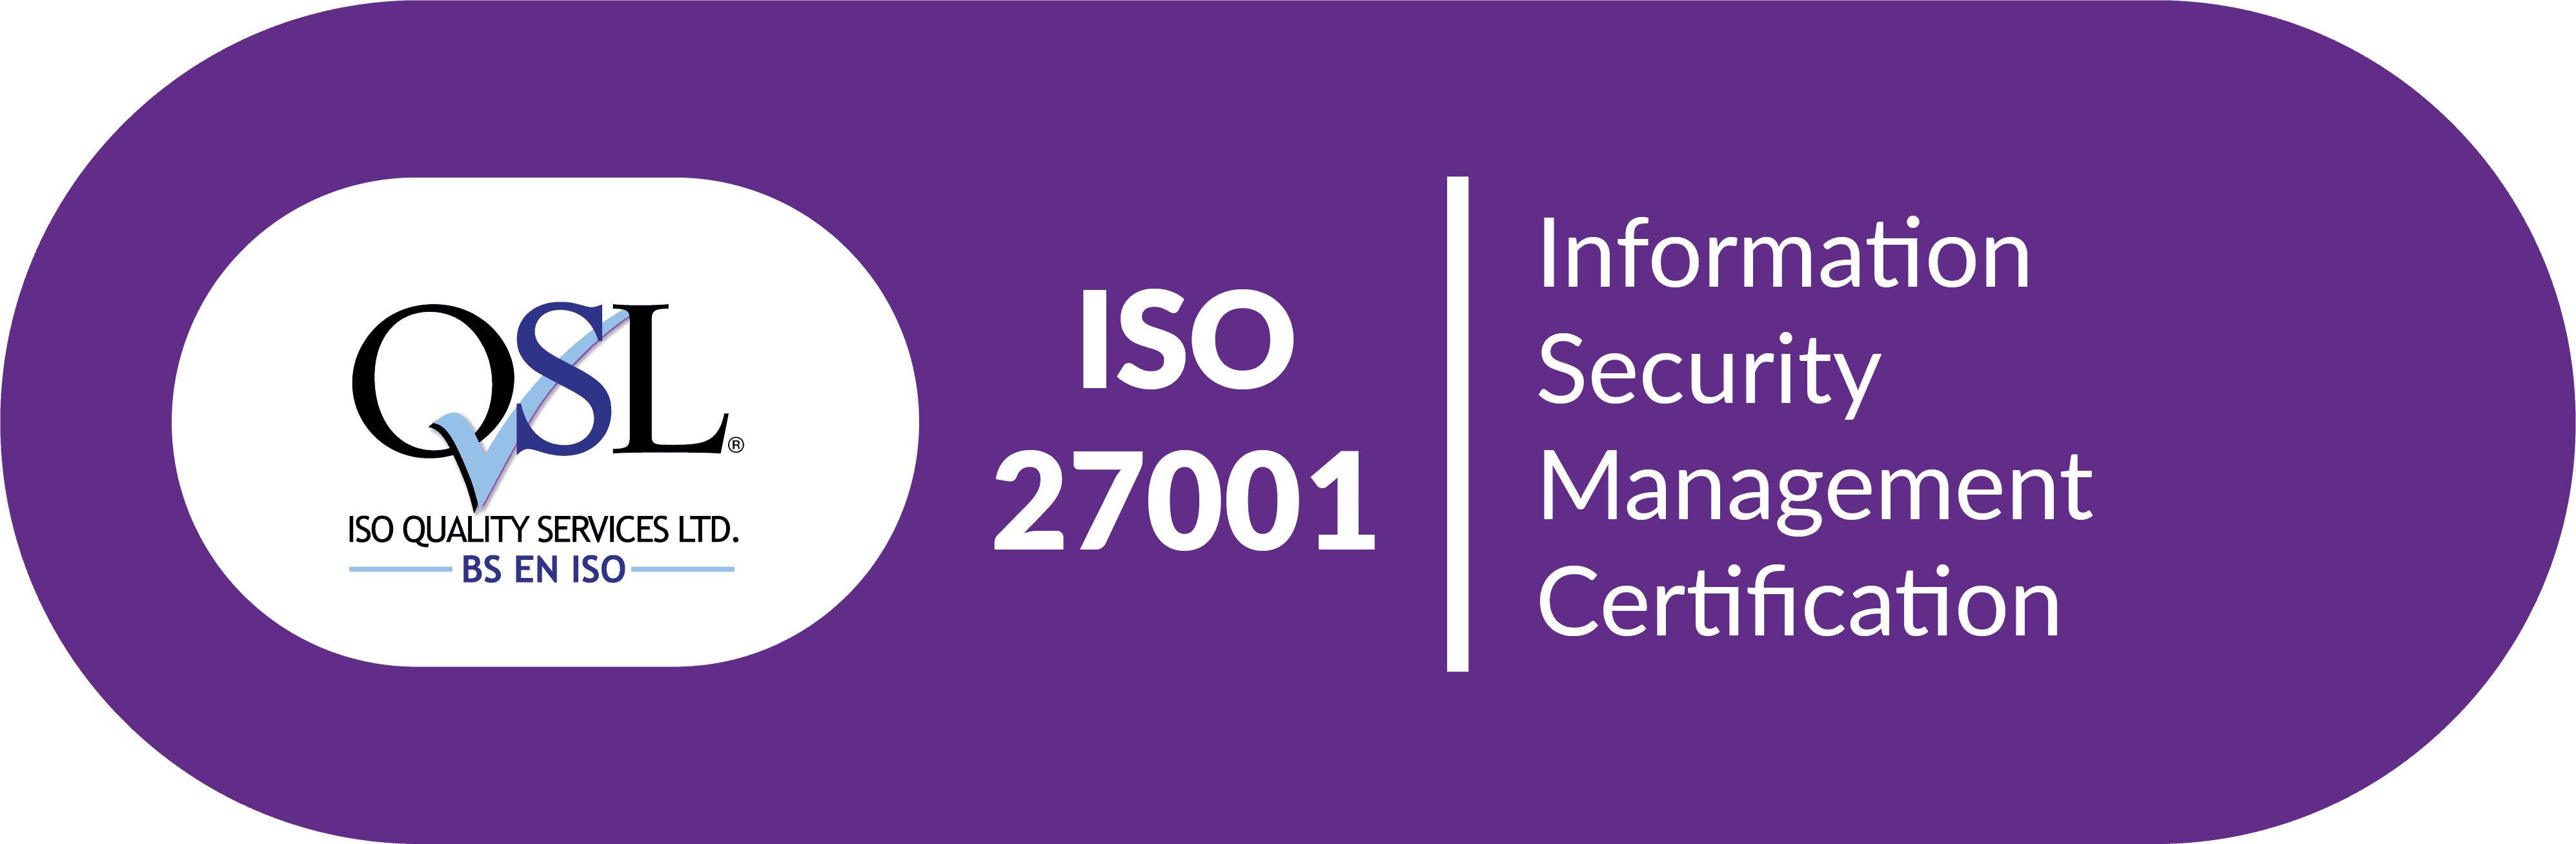 ISO:27001 Information Security Management Certification